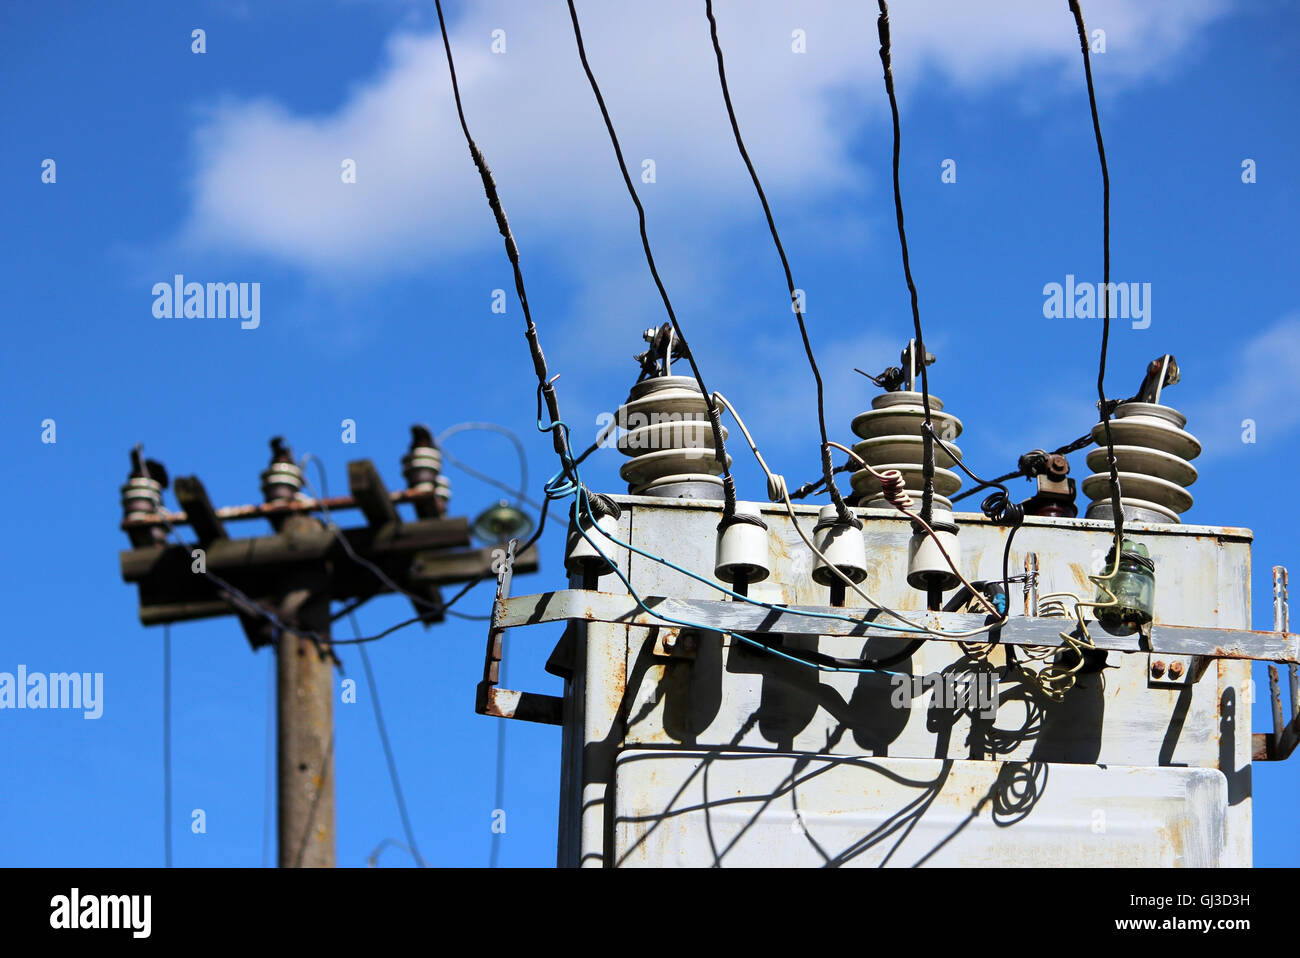 Transformer Circuit Stock Photos Images Overhead Wiring Diagram Electrical Wires Extending From The Station Near Railway On A Background Of Blue Sky